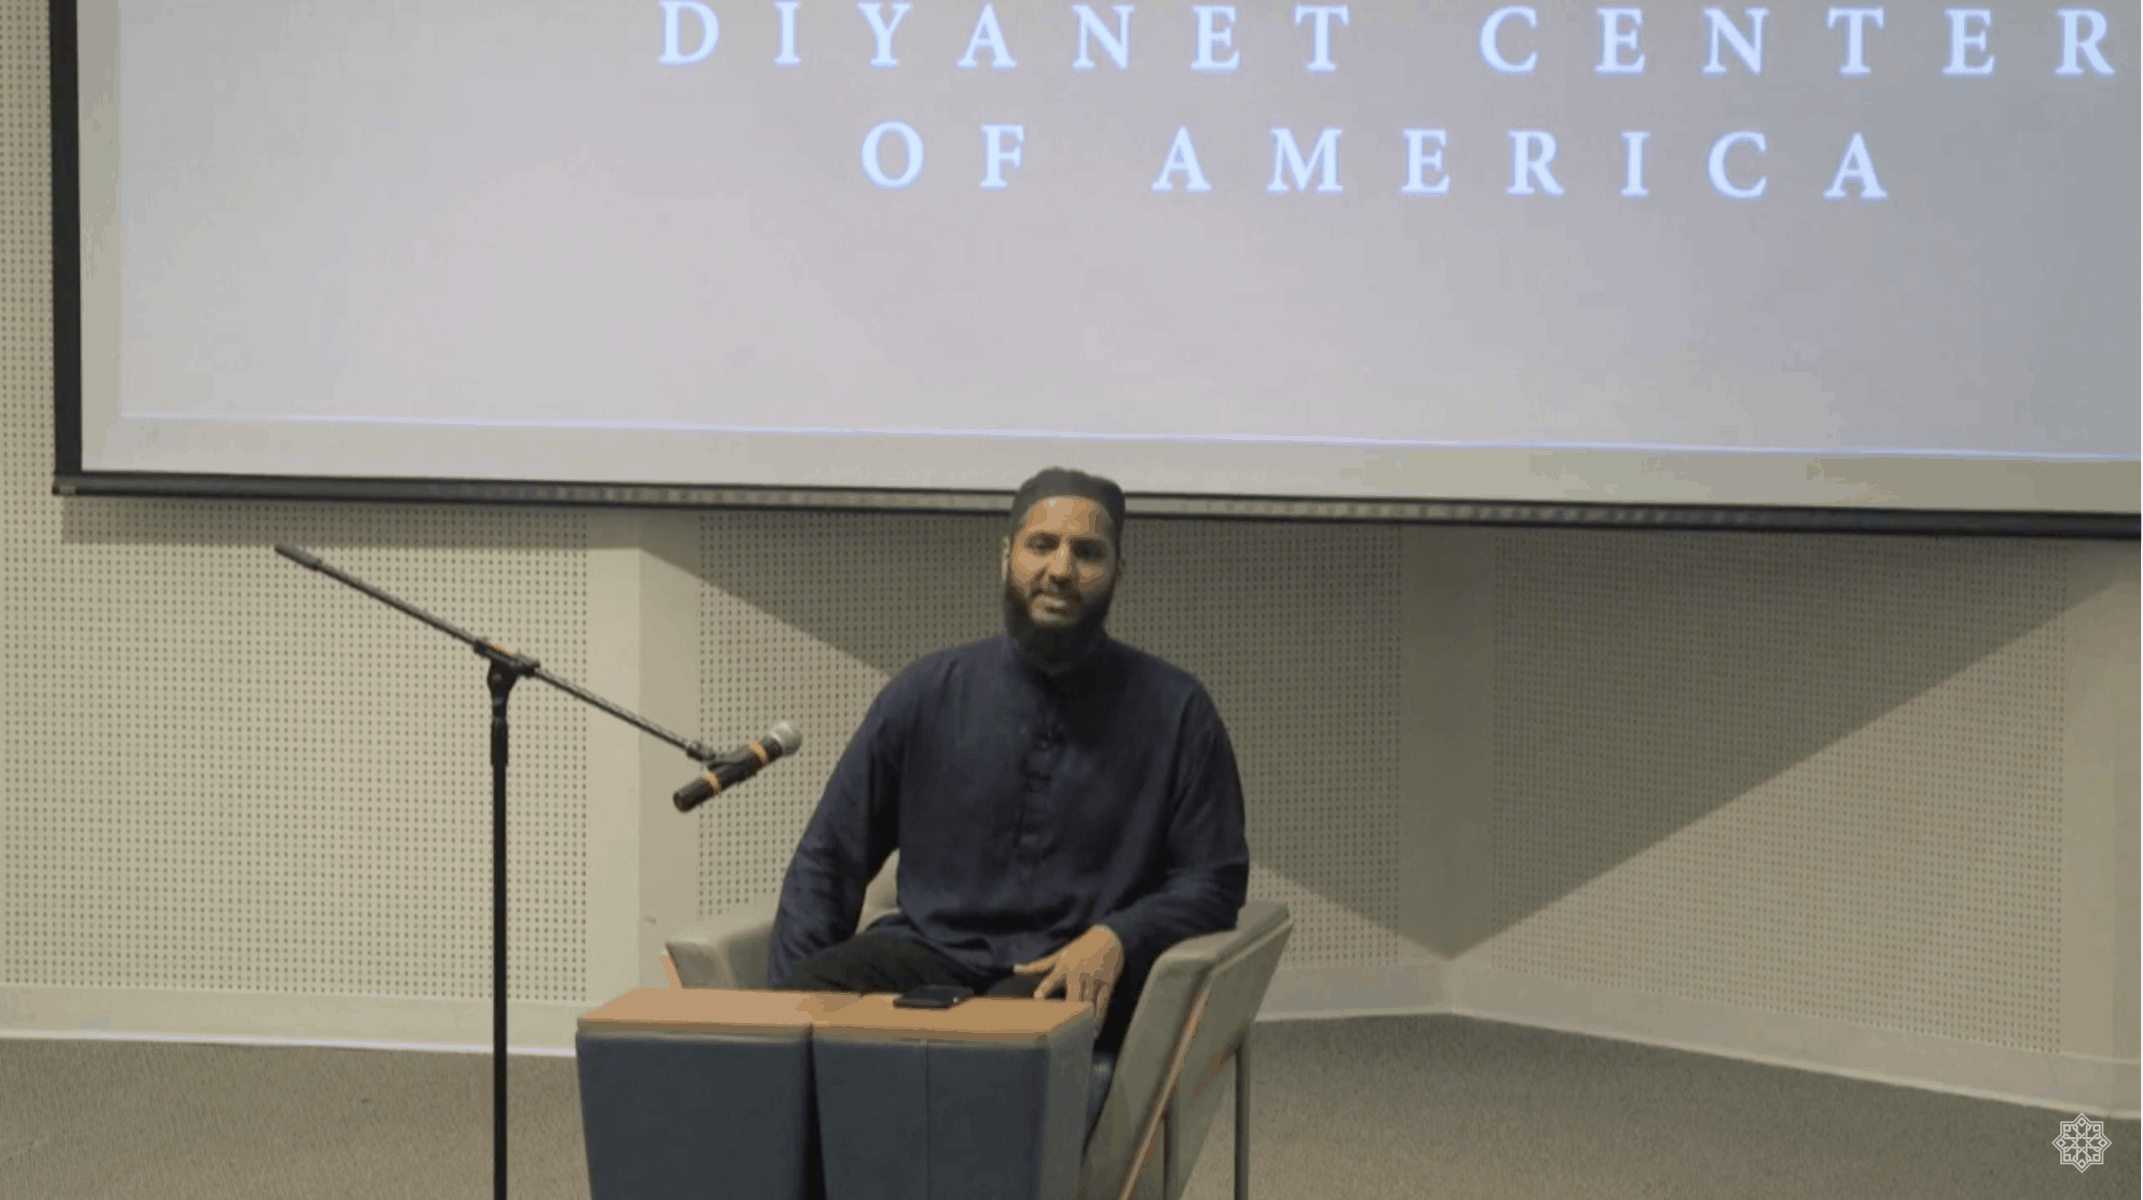 Hussain Kamani – Muslim or American? Caught in the Middle